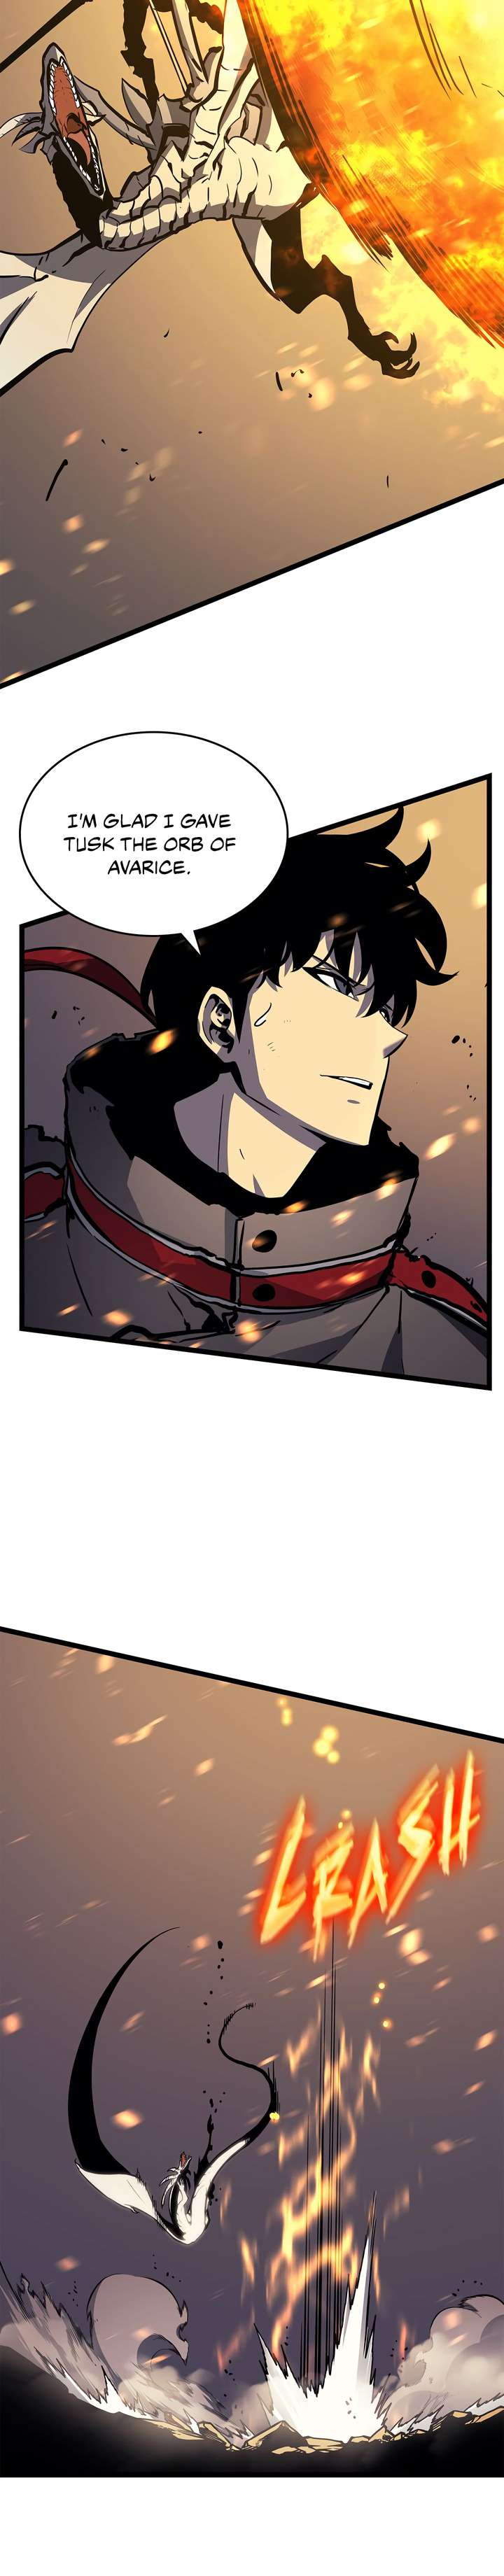 Solo Leveling Chapter 86 Page 30